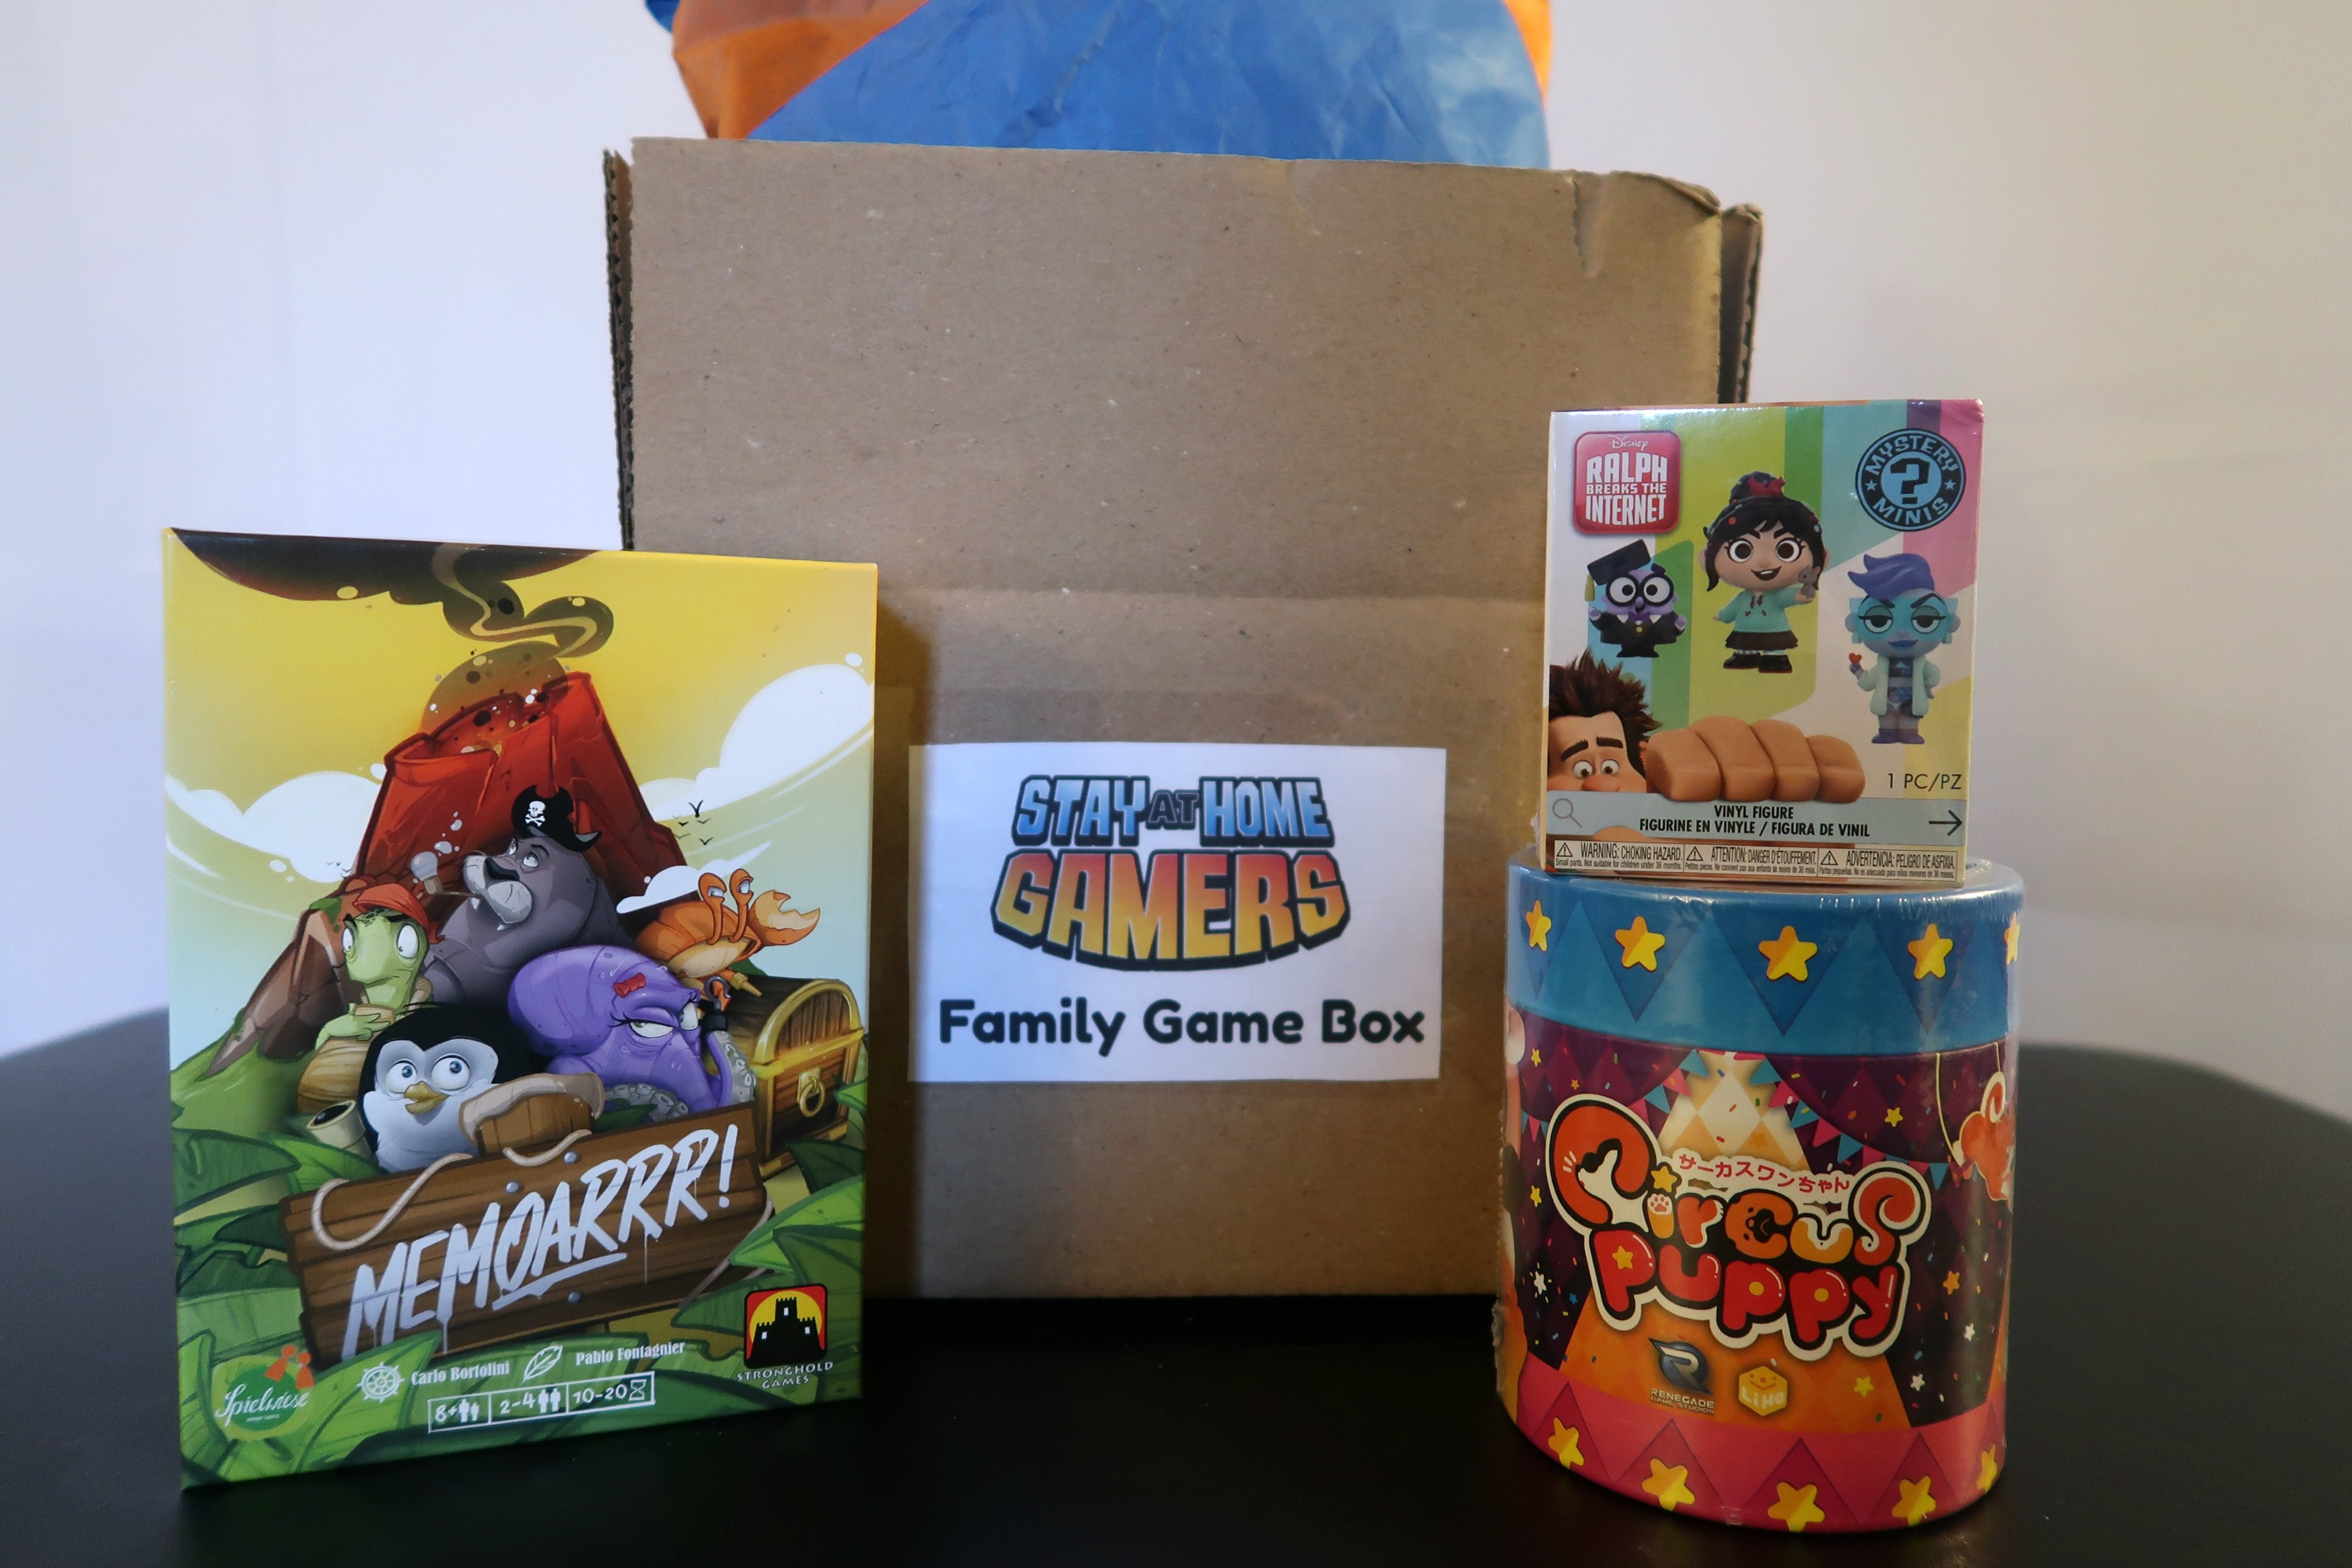 December Little Gamers Family Game Box